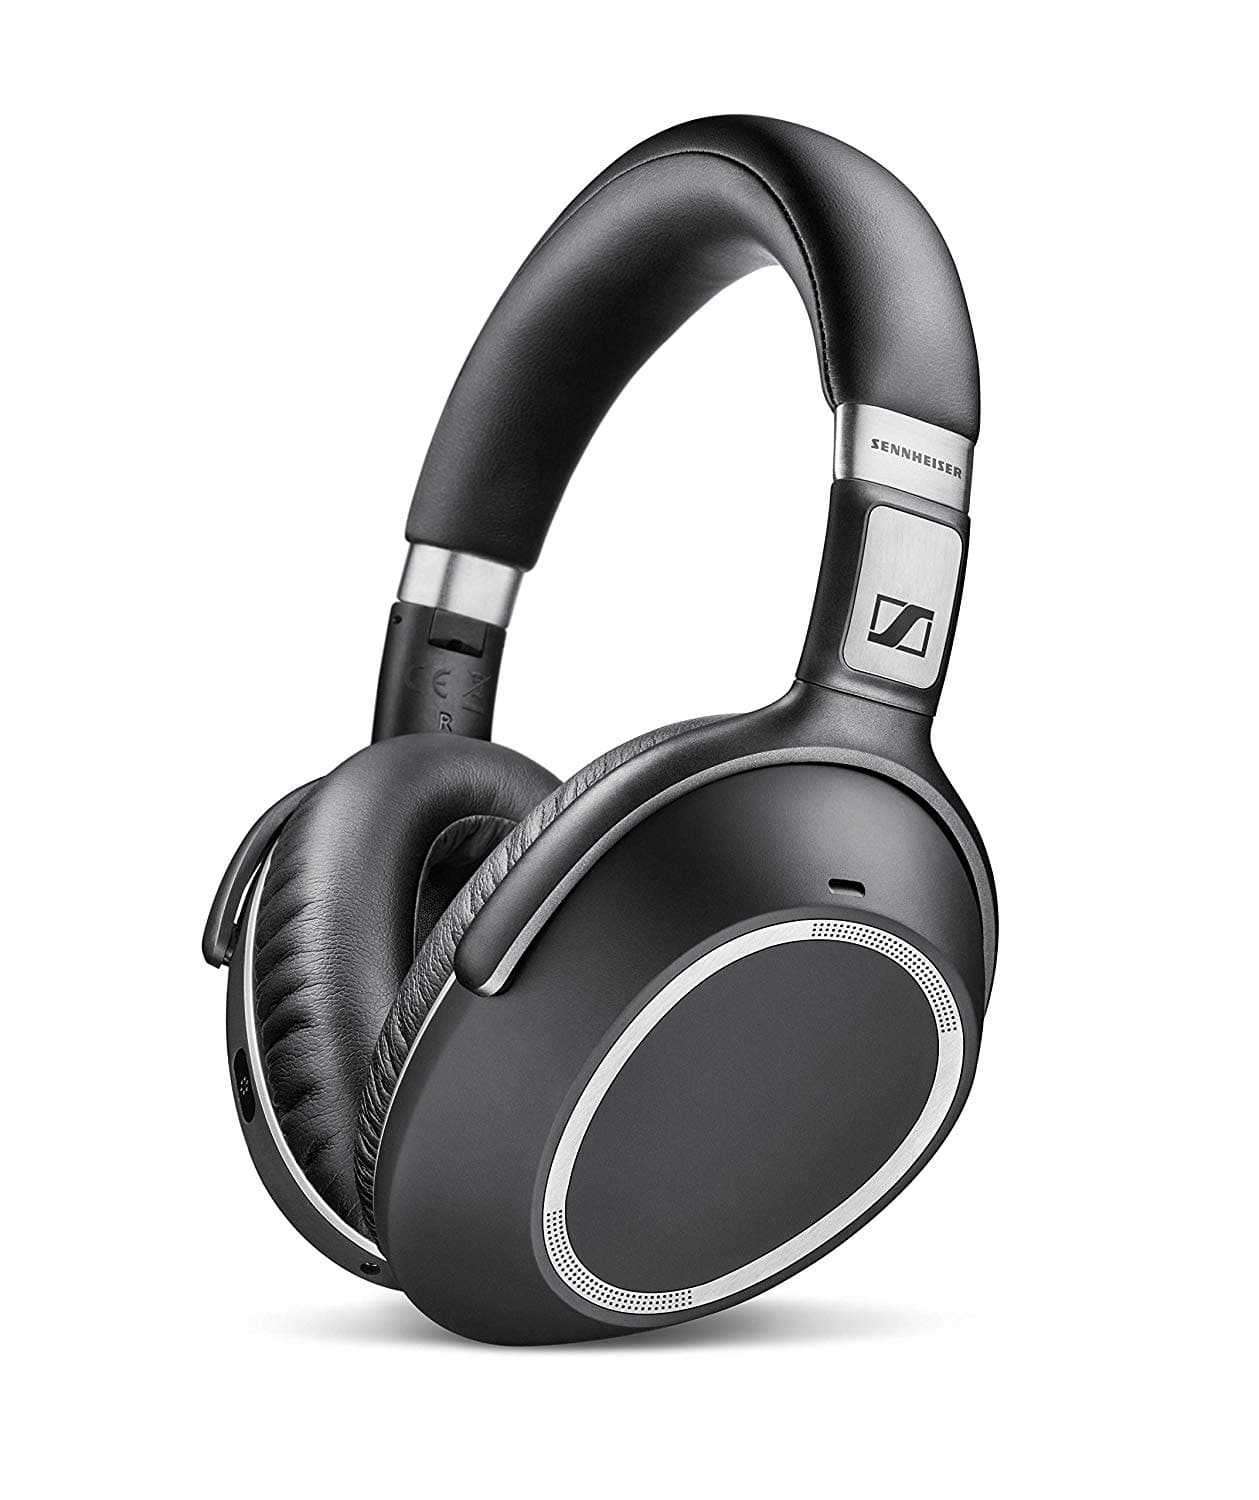 Sennheiser PXC 550 Wireless – NoiseGard Adaptive Noise Cancelling, Bluetooth Headphone with Touch Sensitive Control and 30-Hour Battery Life $199.99